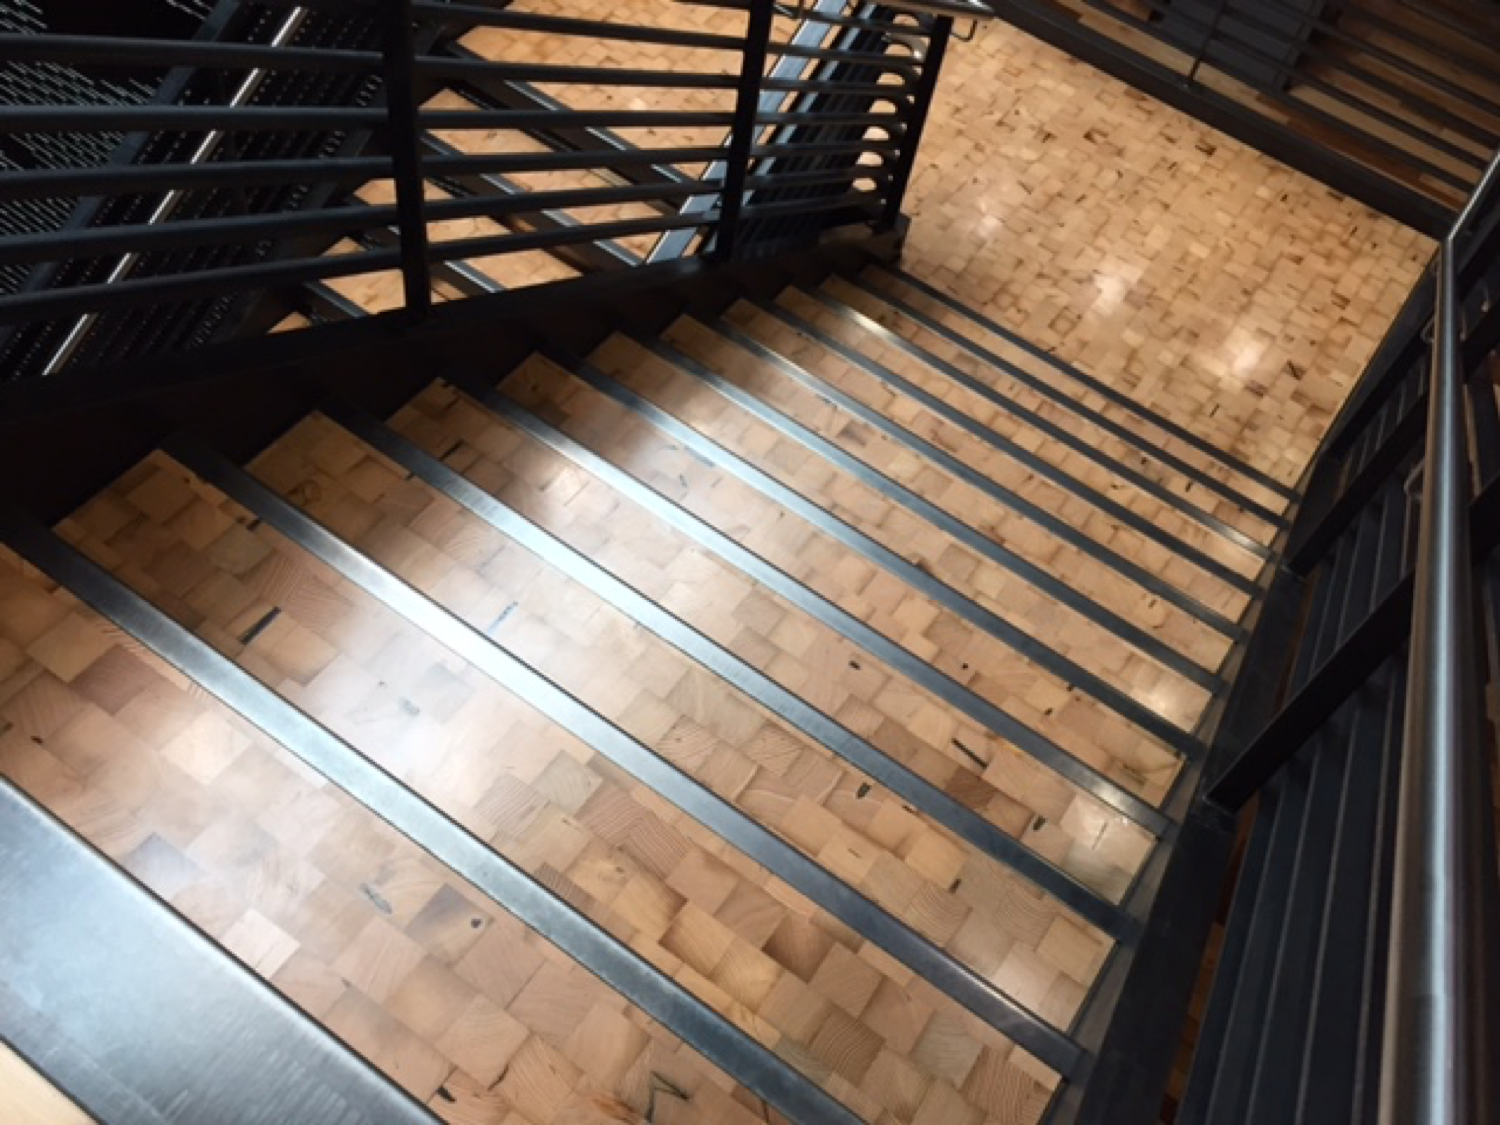 Reclaimed Douglas Fir end grain treads and landings | Lease Crutcher Lewis HQ, Seattle, WA